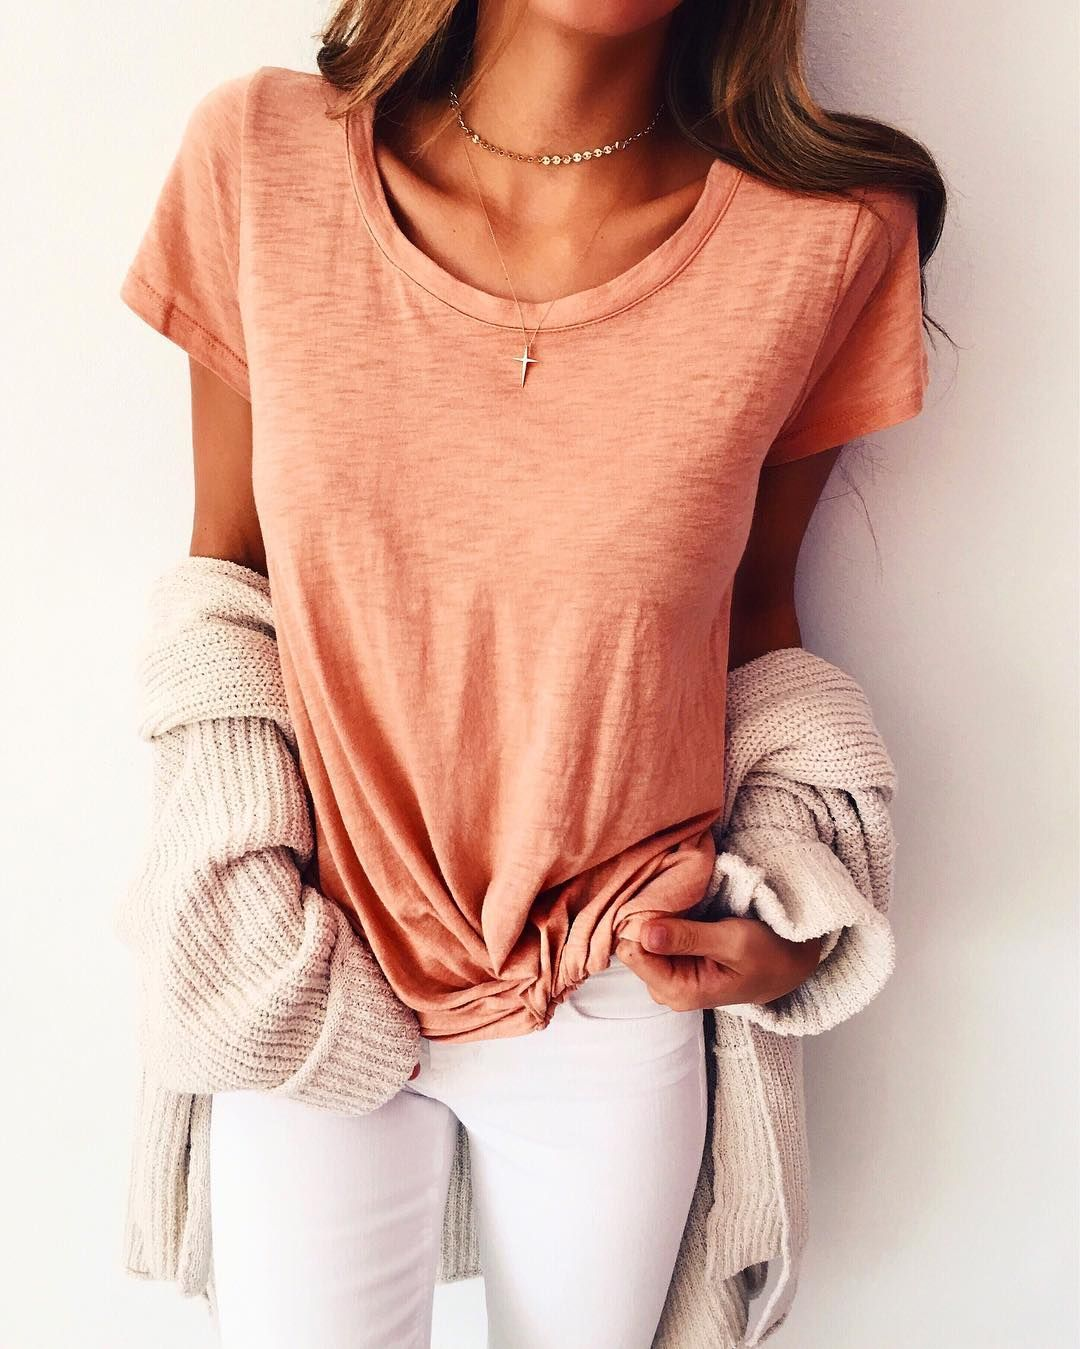 knotted tees and all the effortless chic feels